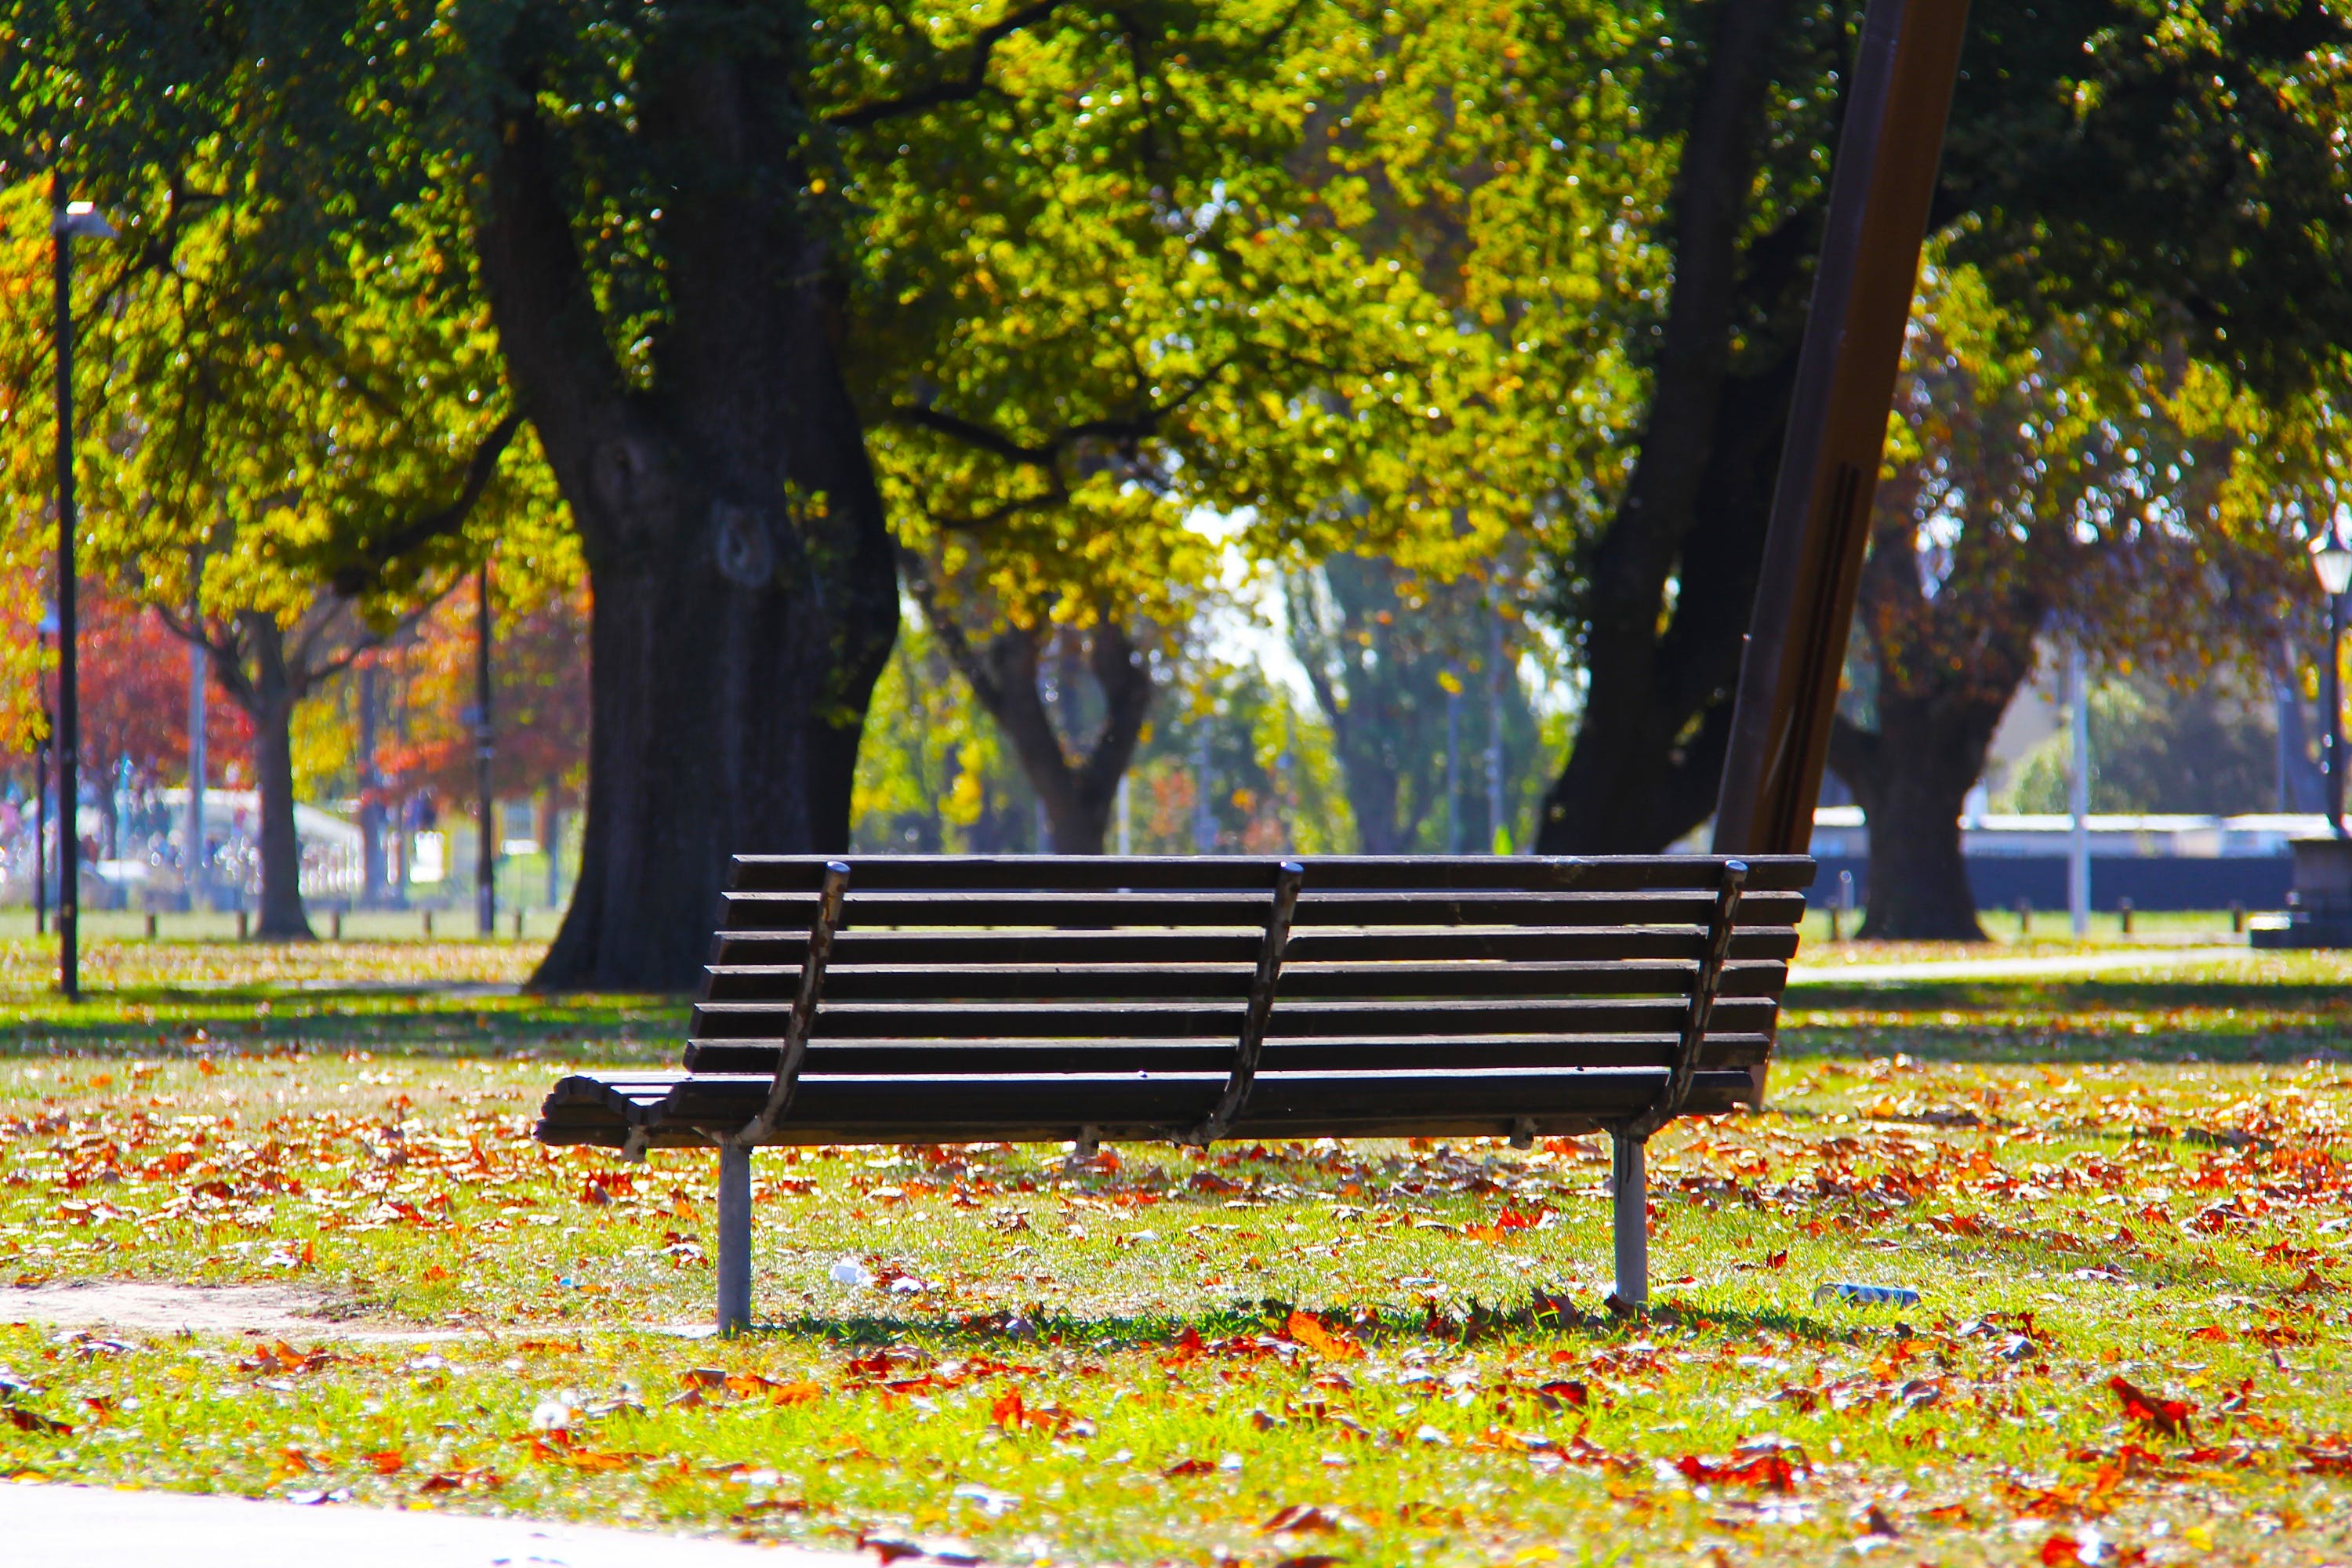 A park bench, like the one you can approach people on.